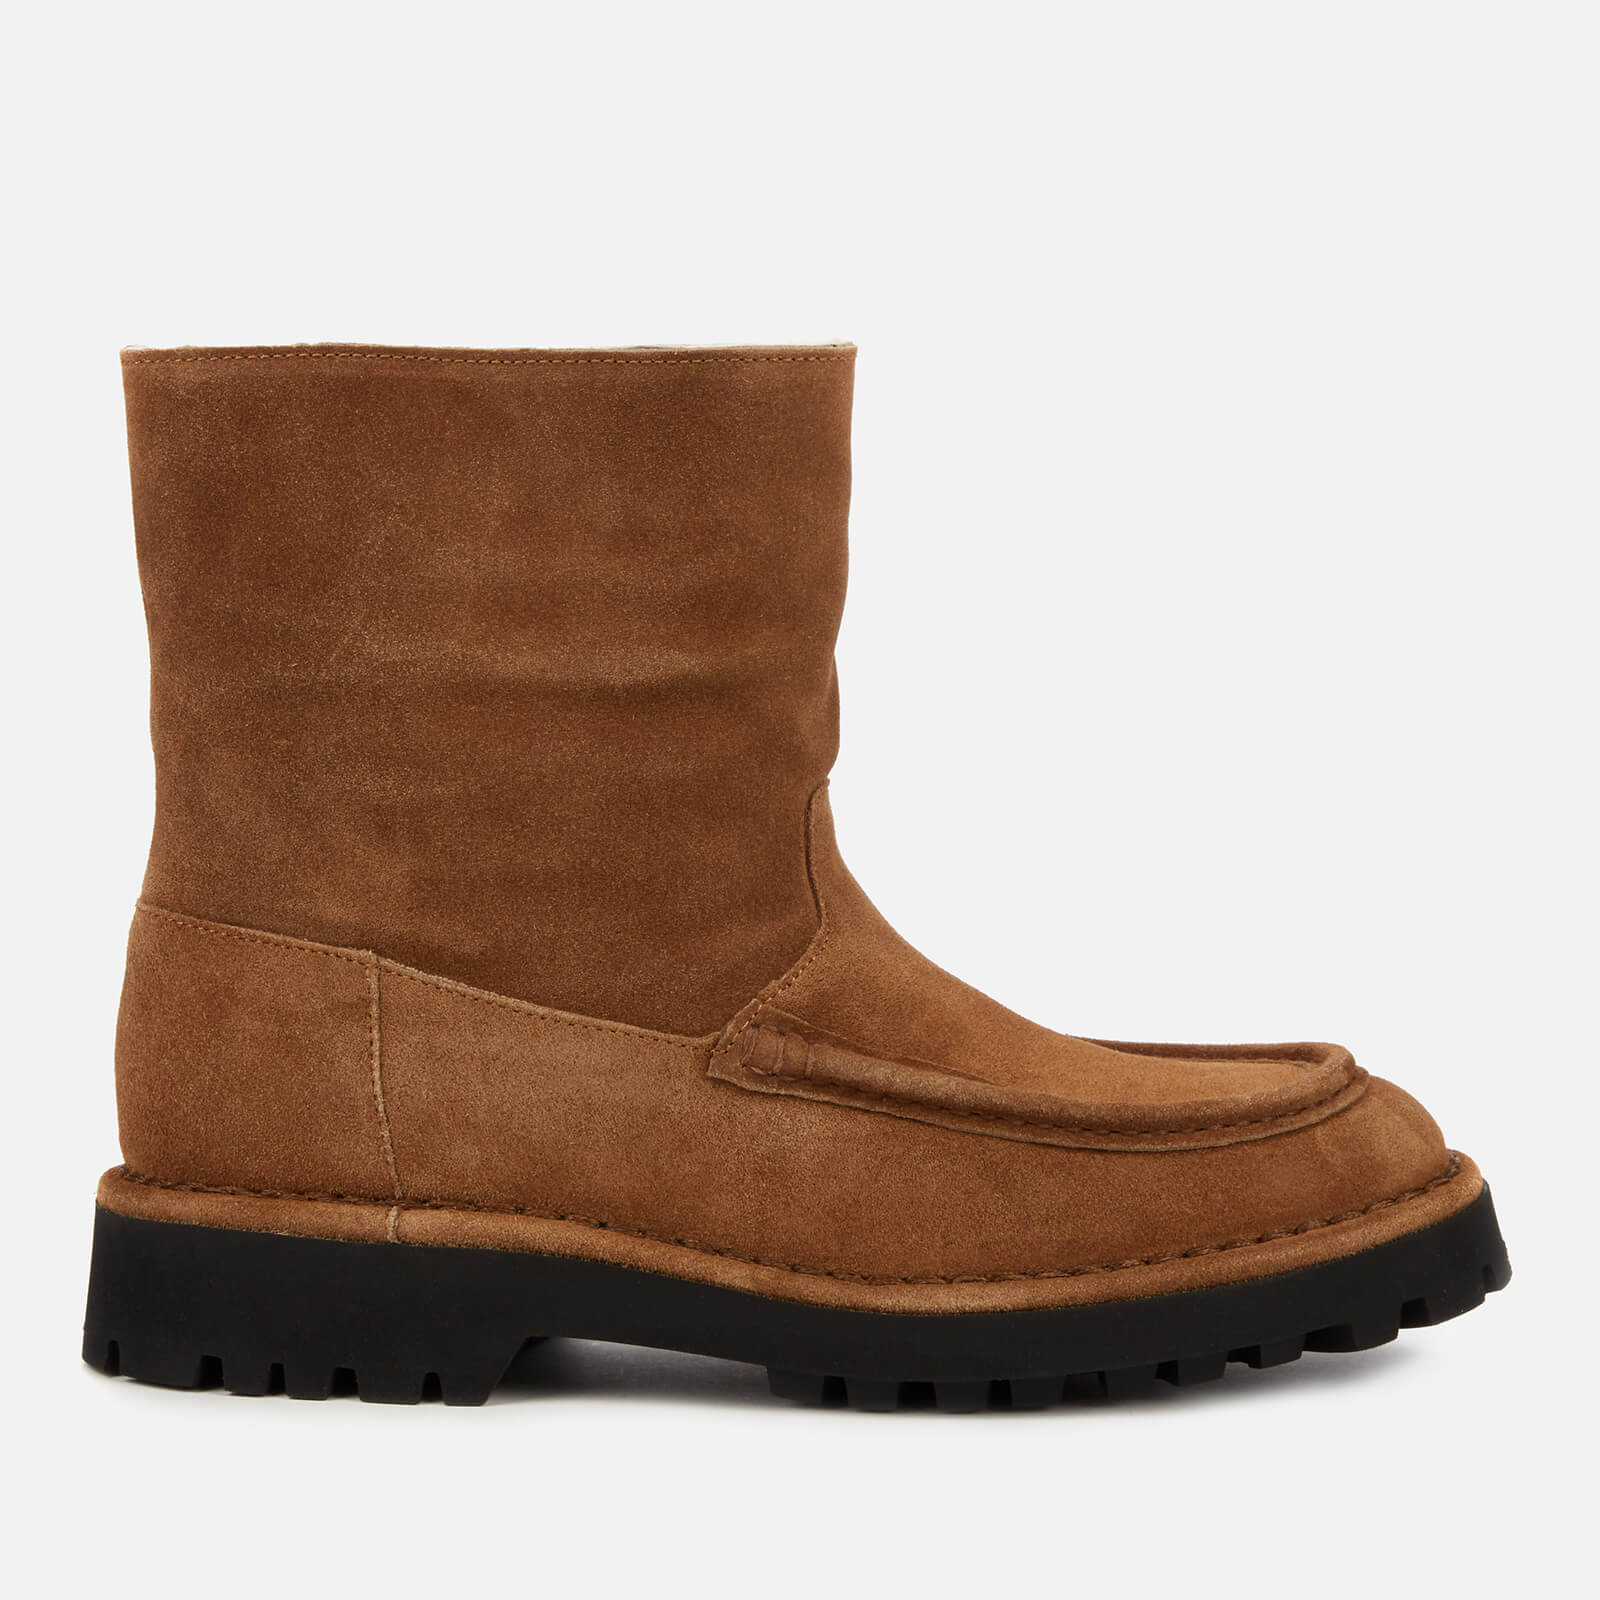 Kenzo Women's K-Mount Suede/Shearling Lined Boots - Brown - Uk 4